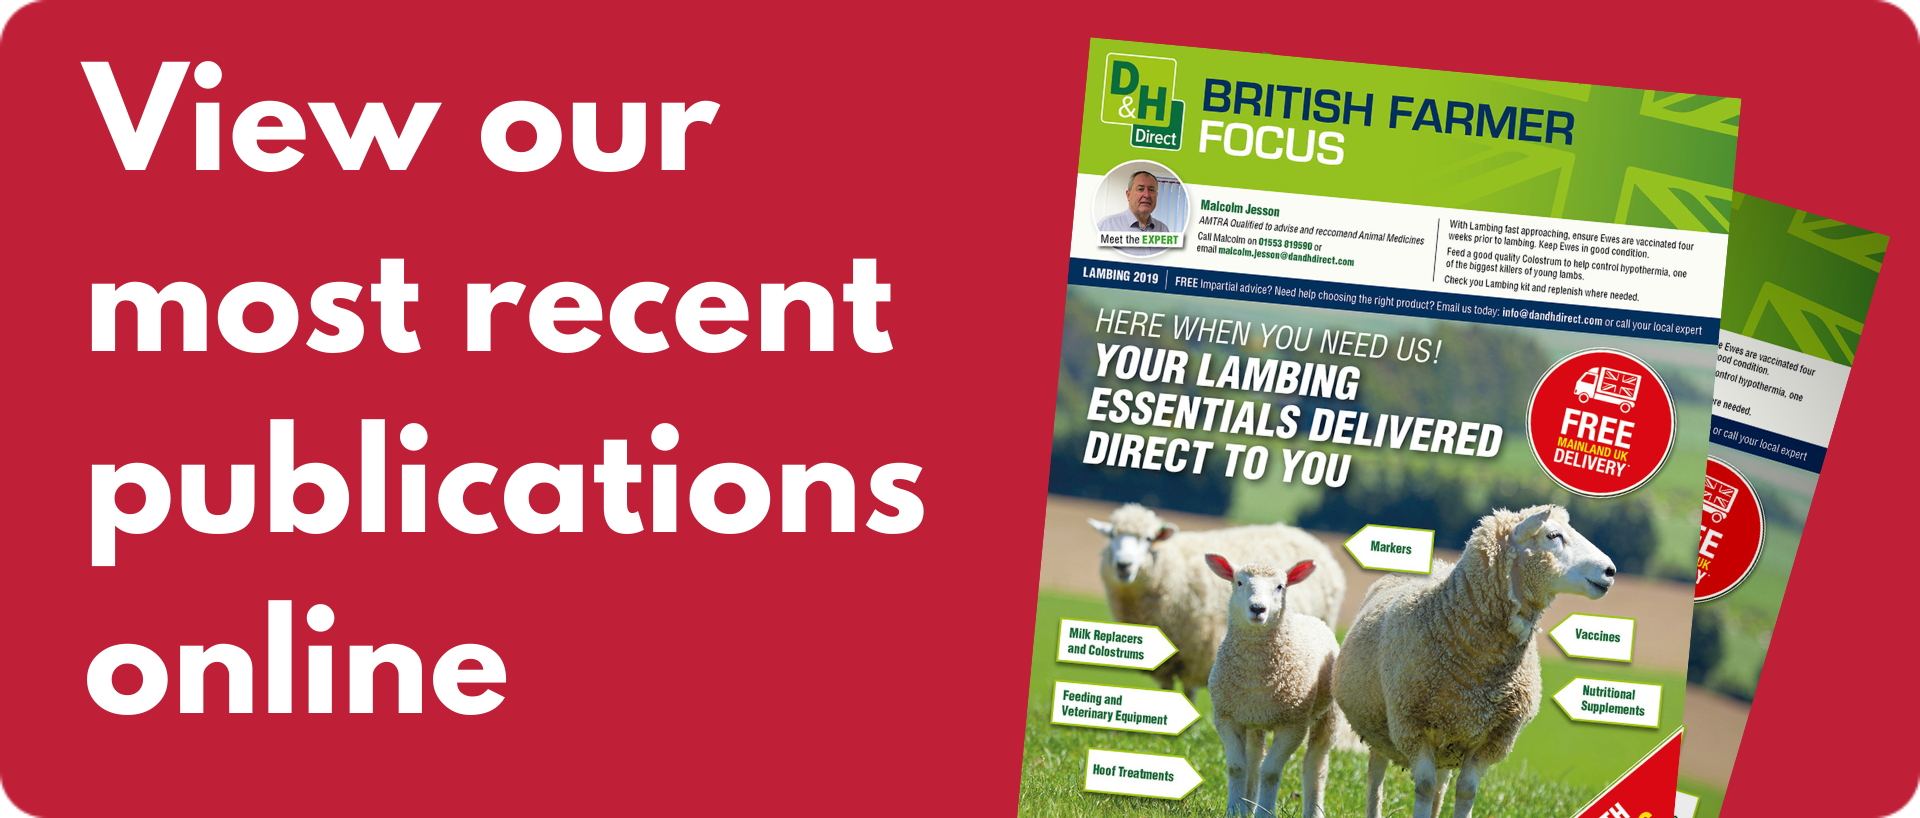 Download the latest British Farms Focucs